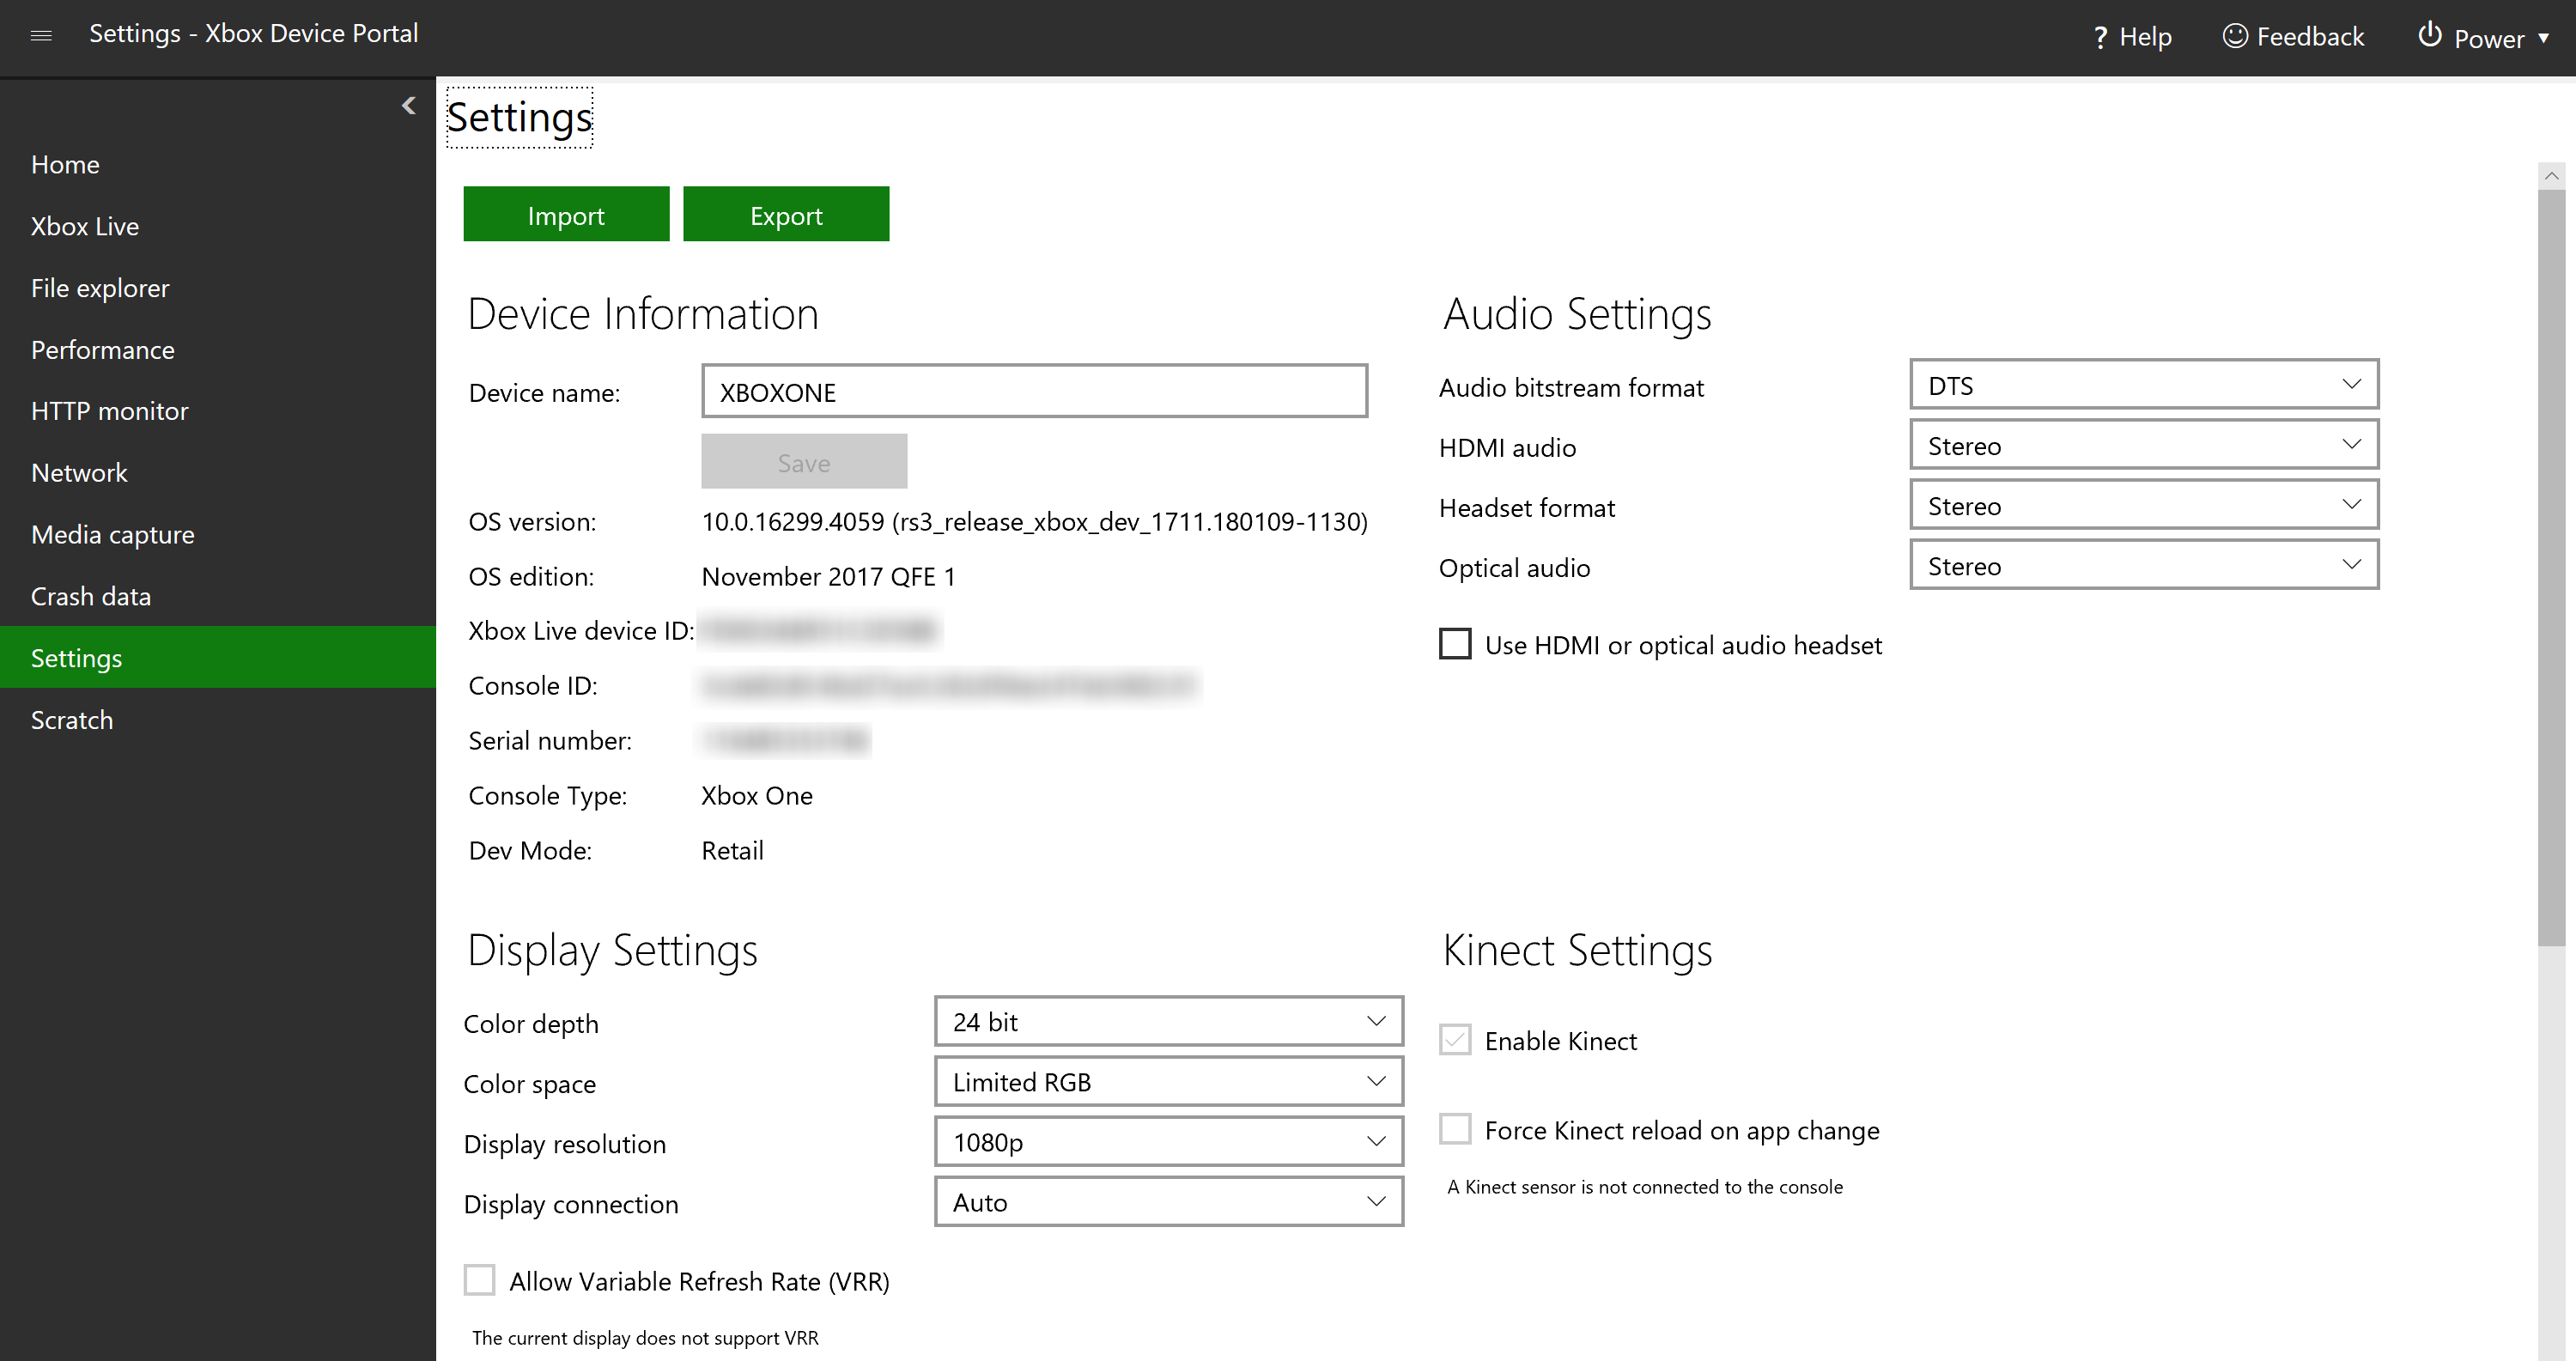 Device Portal For Xbox Windows Uwp Applications Microsoft Docs Unkown Xbox360 Console Help Identify W Fixing Dvd Drive There Are Several Sections With Different Settings To View And Or Edit Which Explained Below